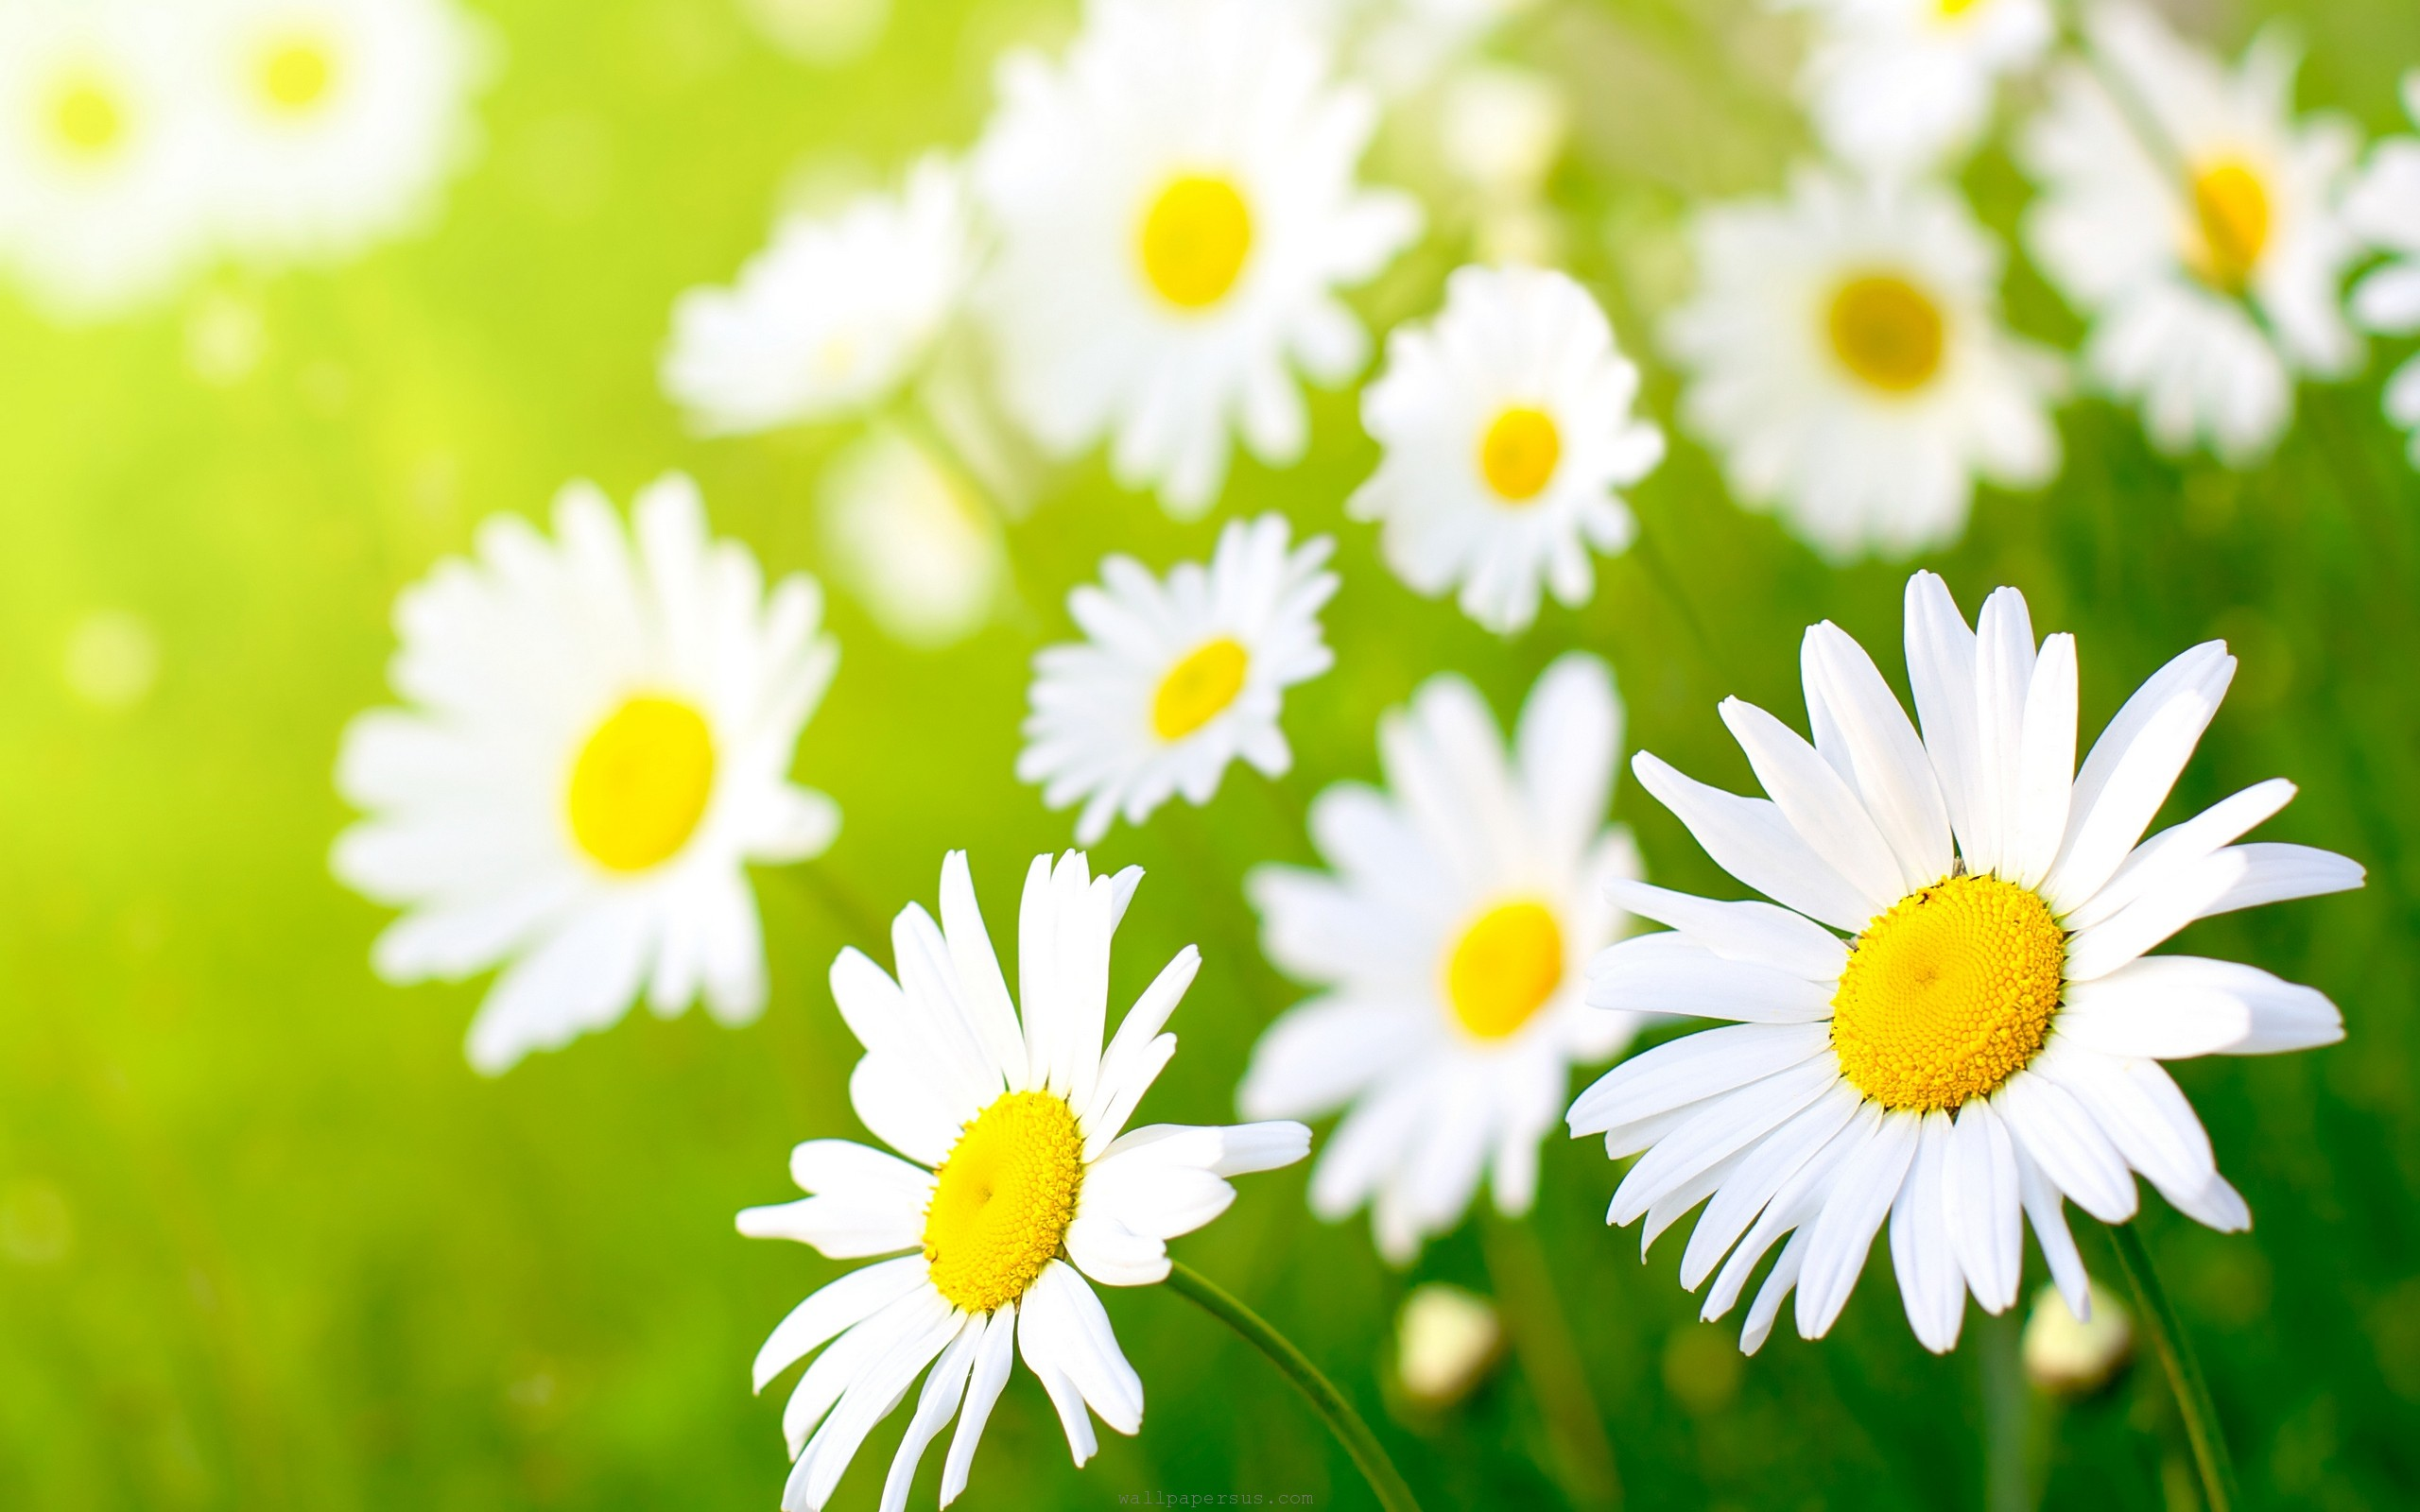 Daisies beauty colors daisy field flowersg allergen webmaster dhlflorist Choice Image